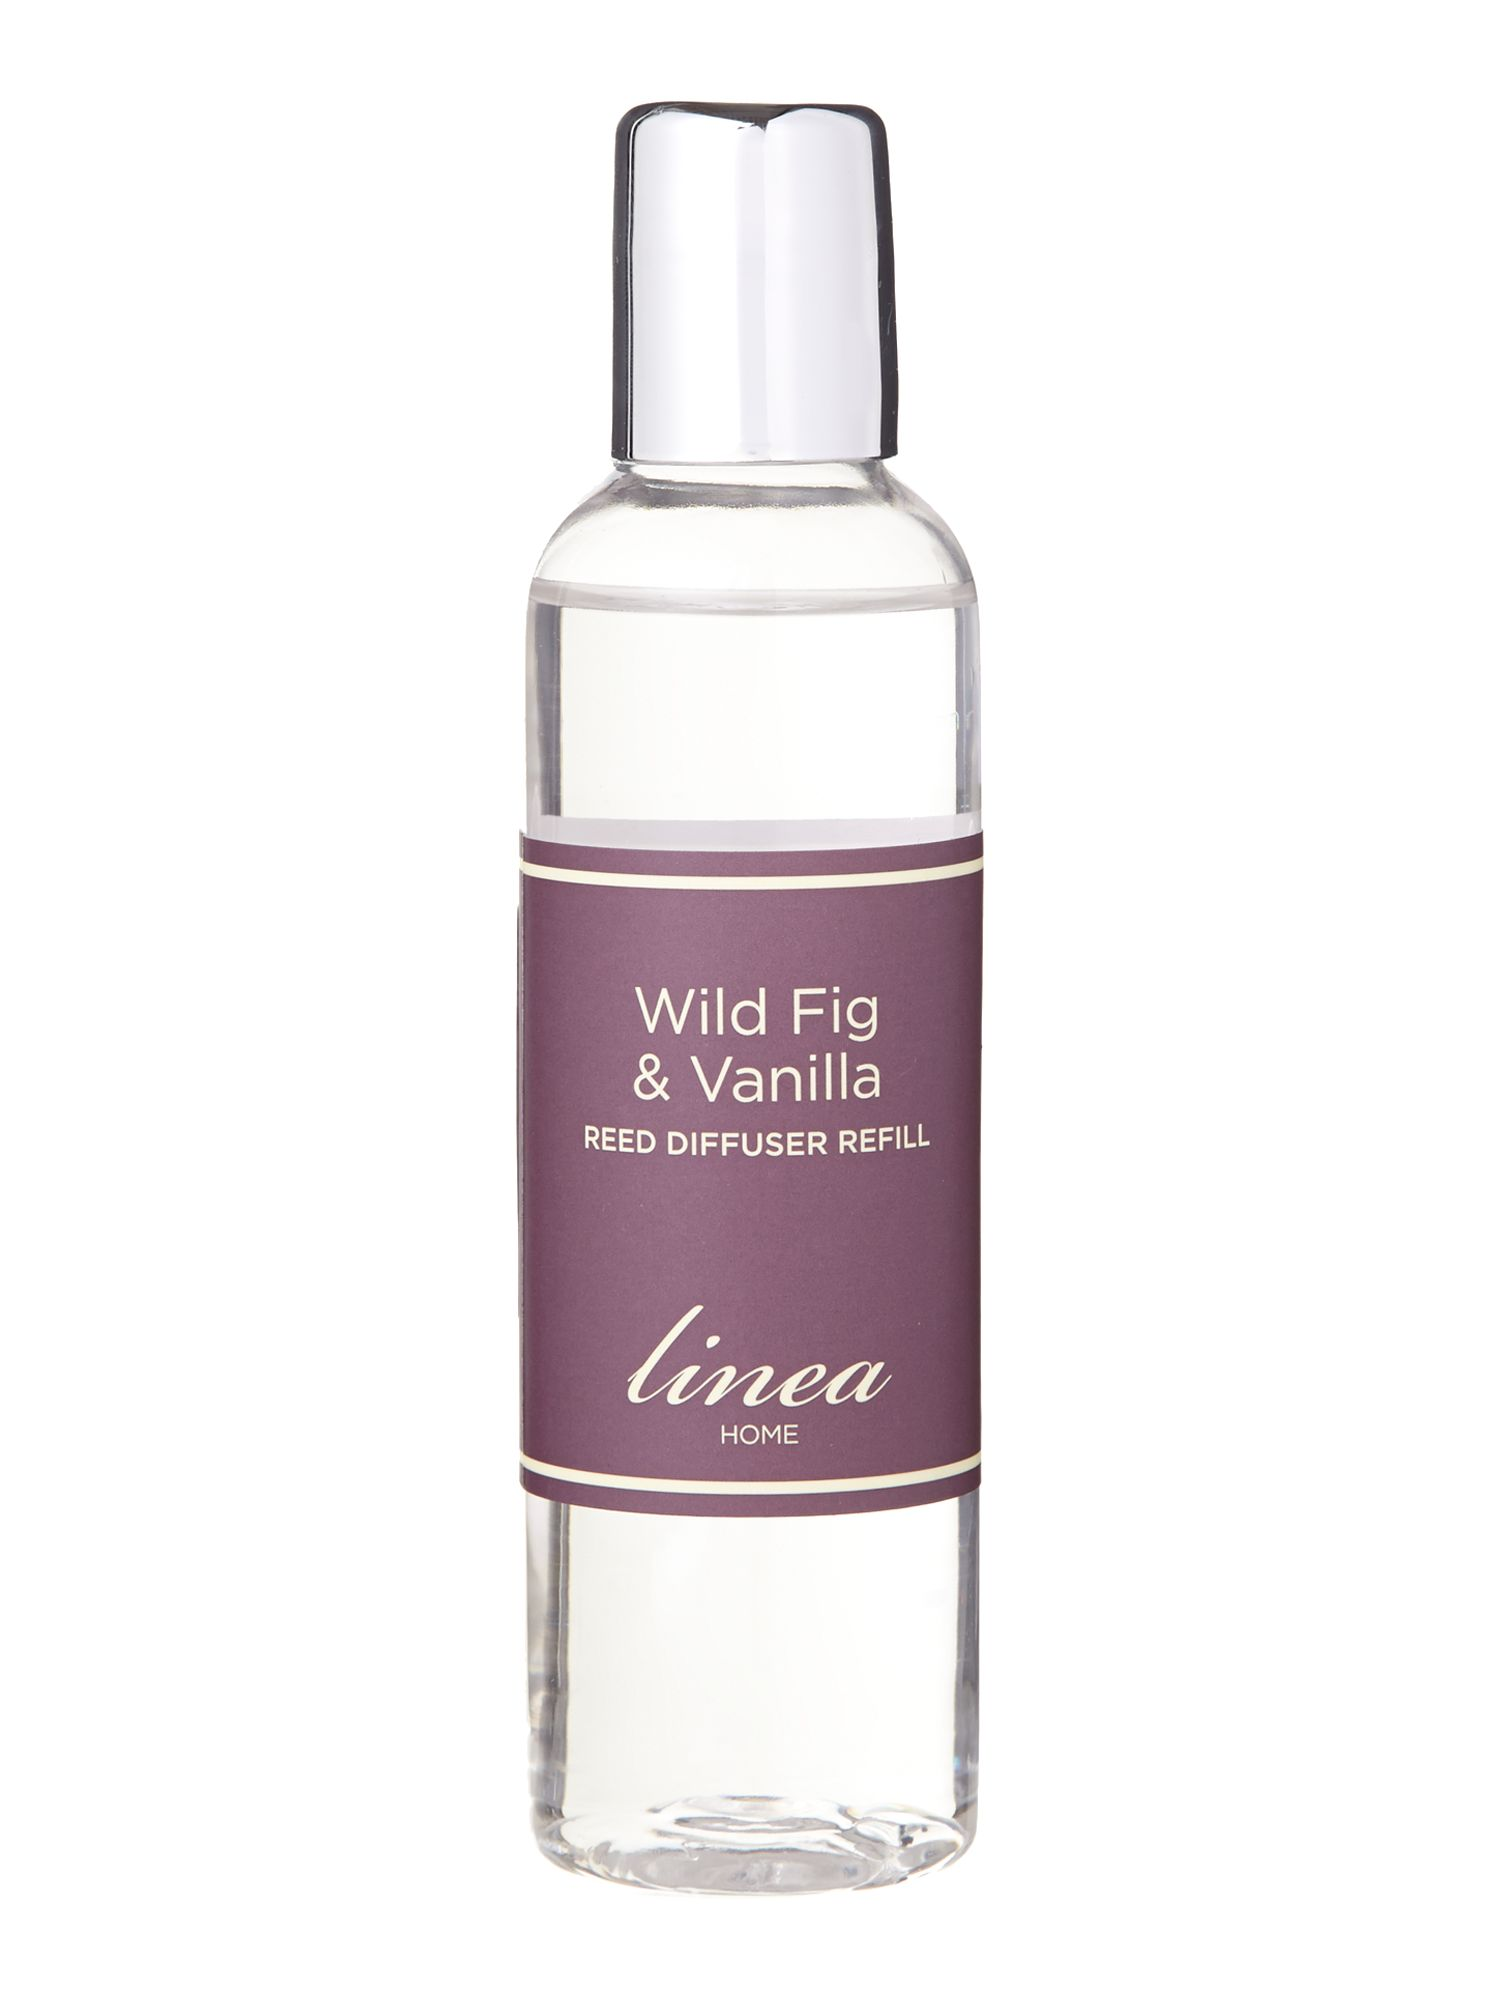 Wild fig & vanilla refill oil